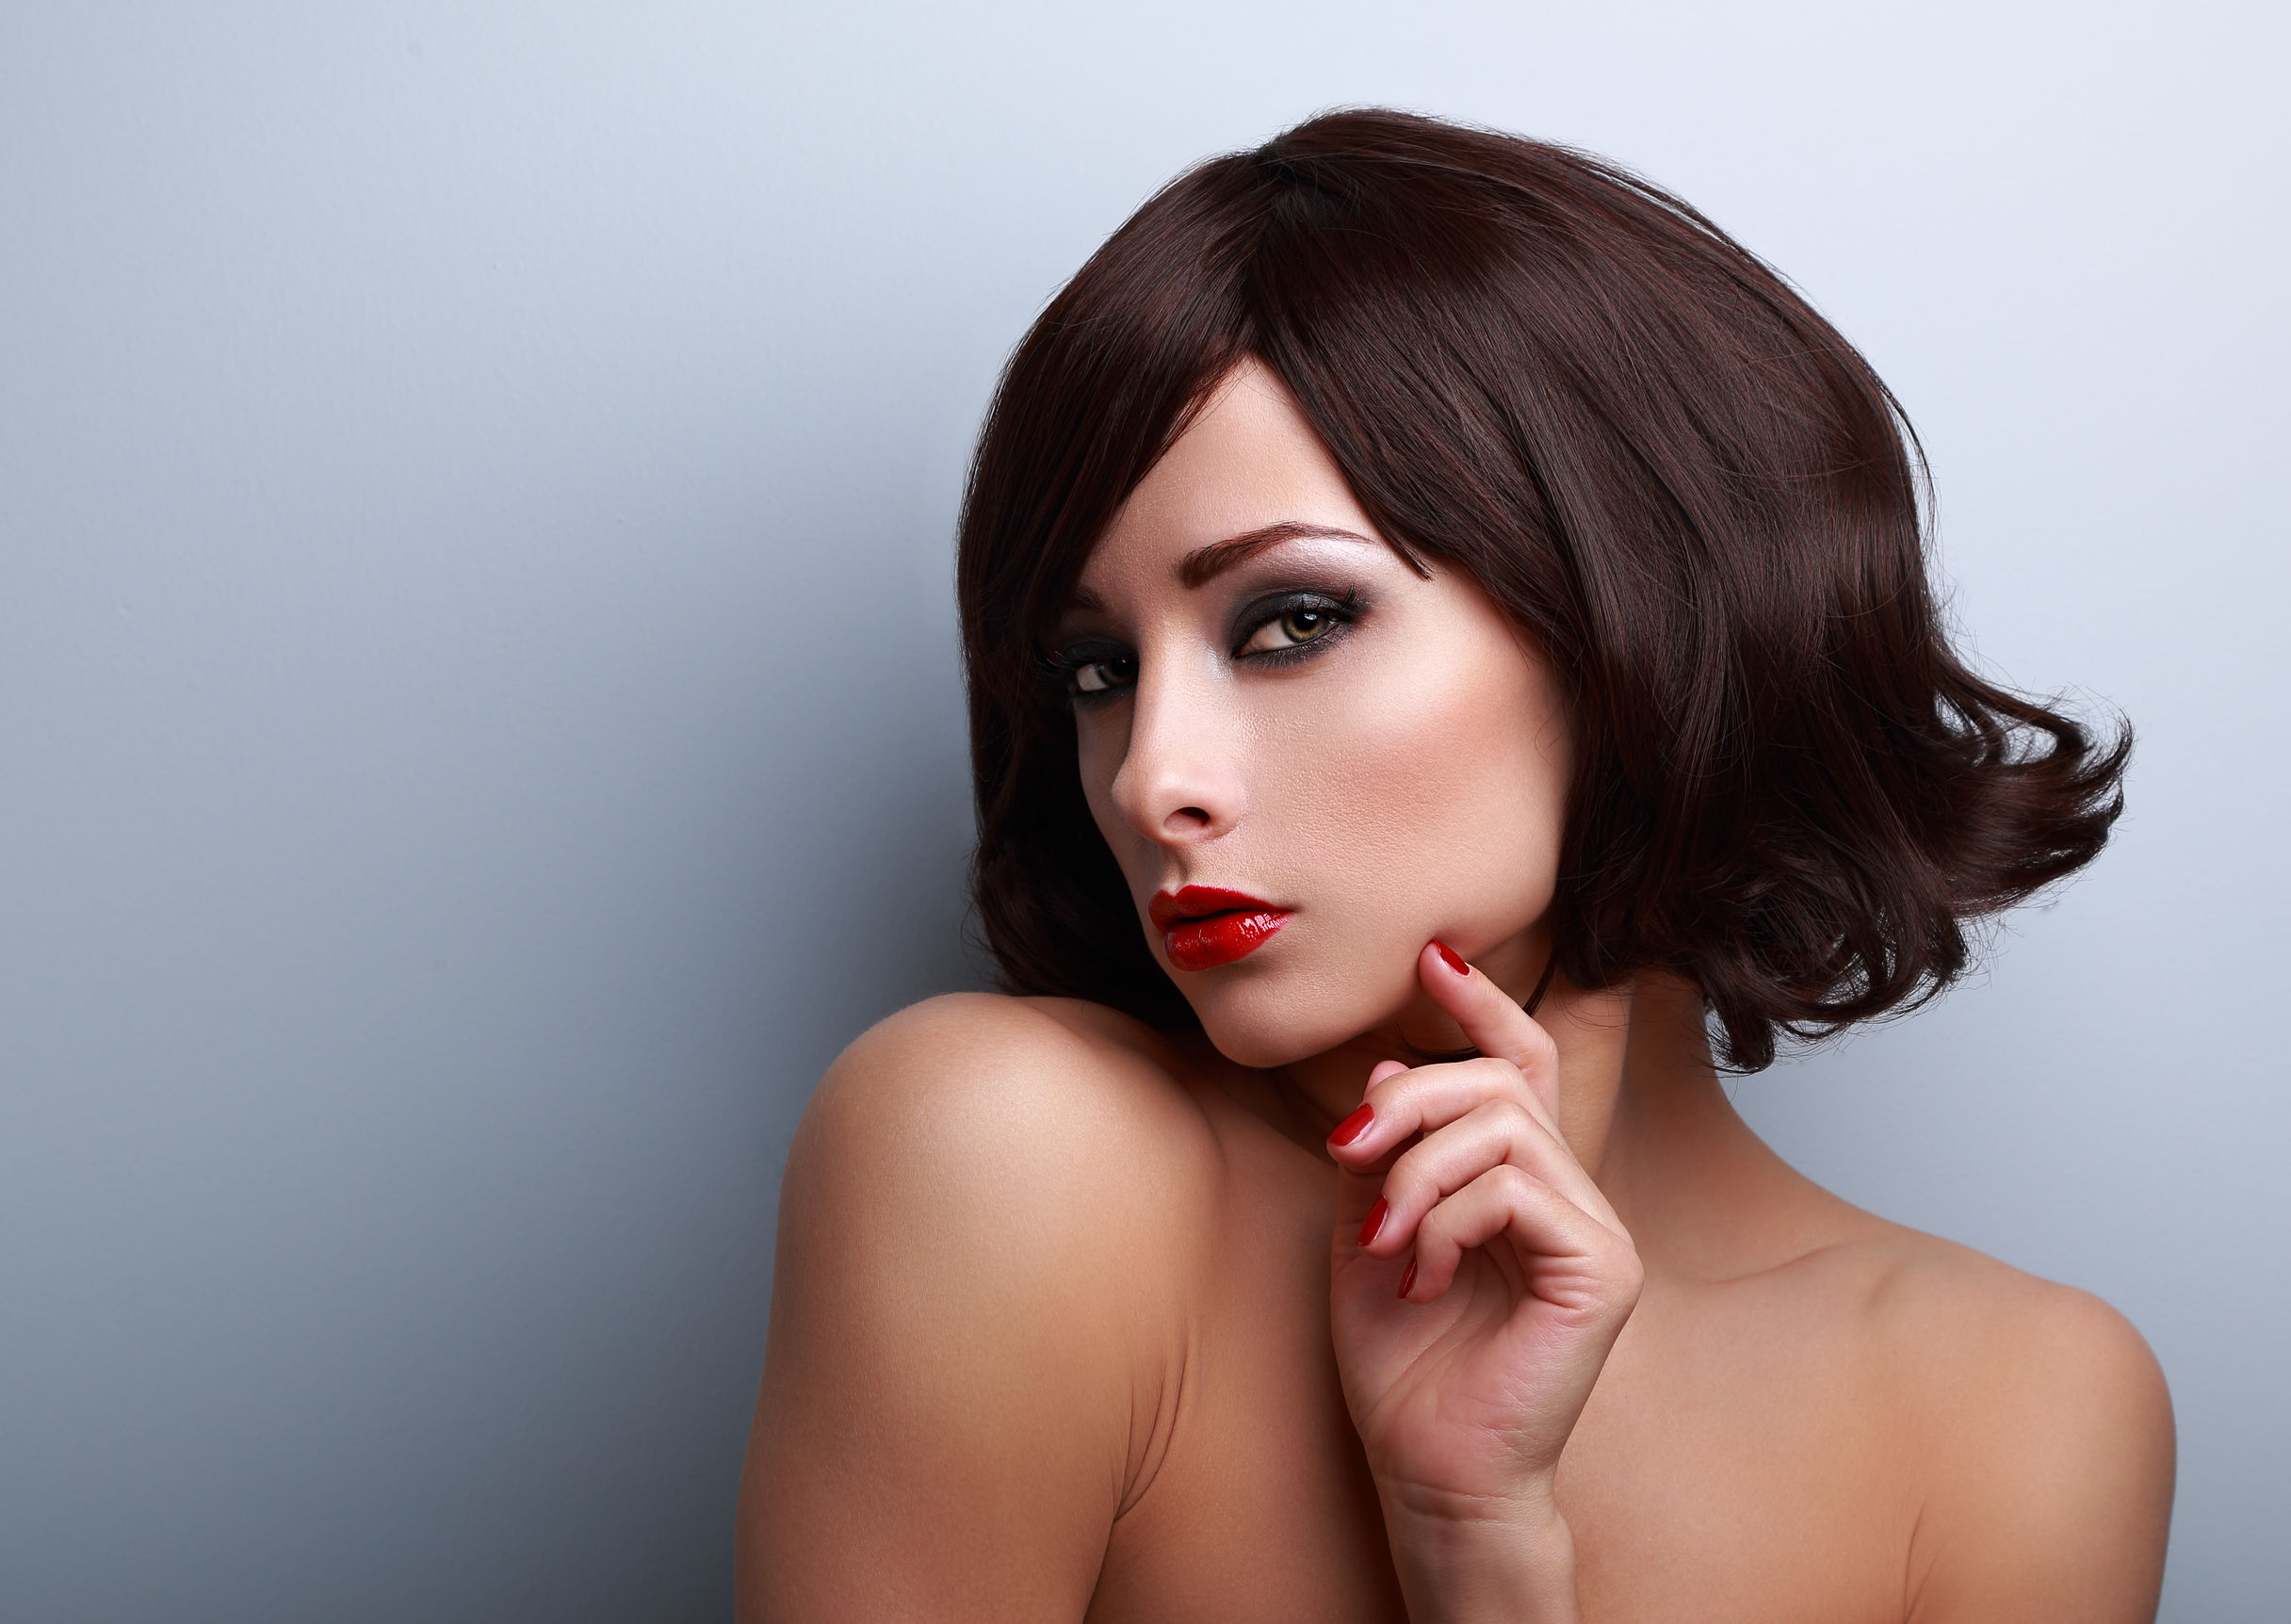 40094184 - beautiful makeup woman with short hairstyle and red nails gloss with empty copy space on blue background